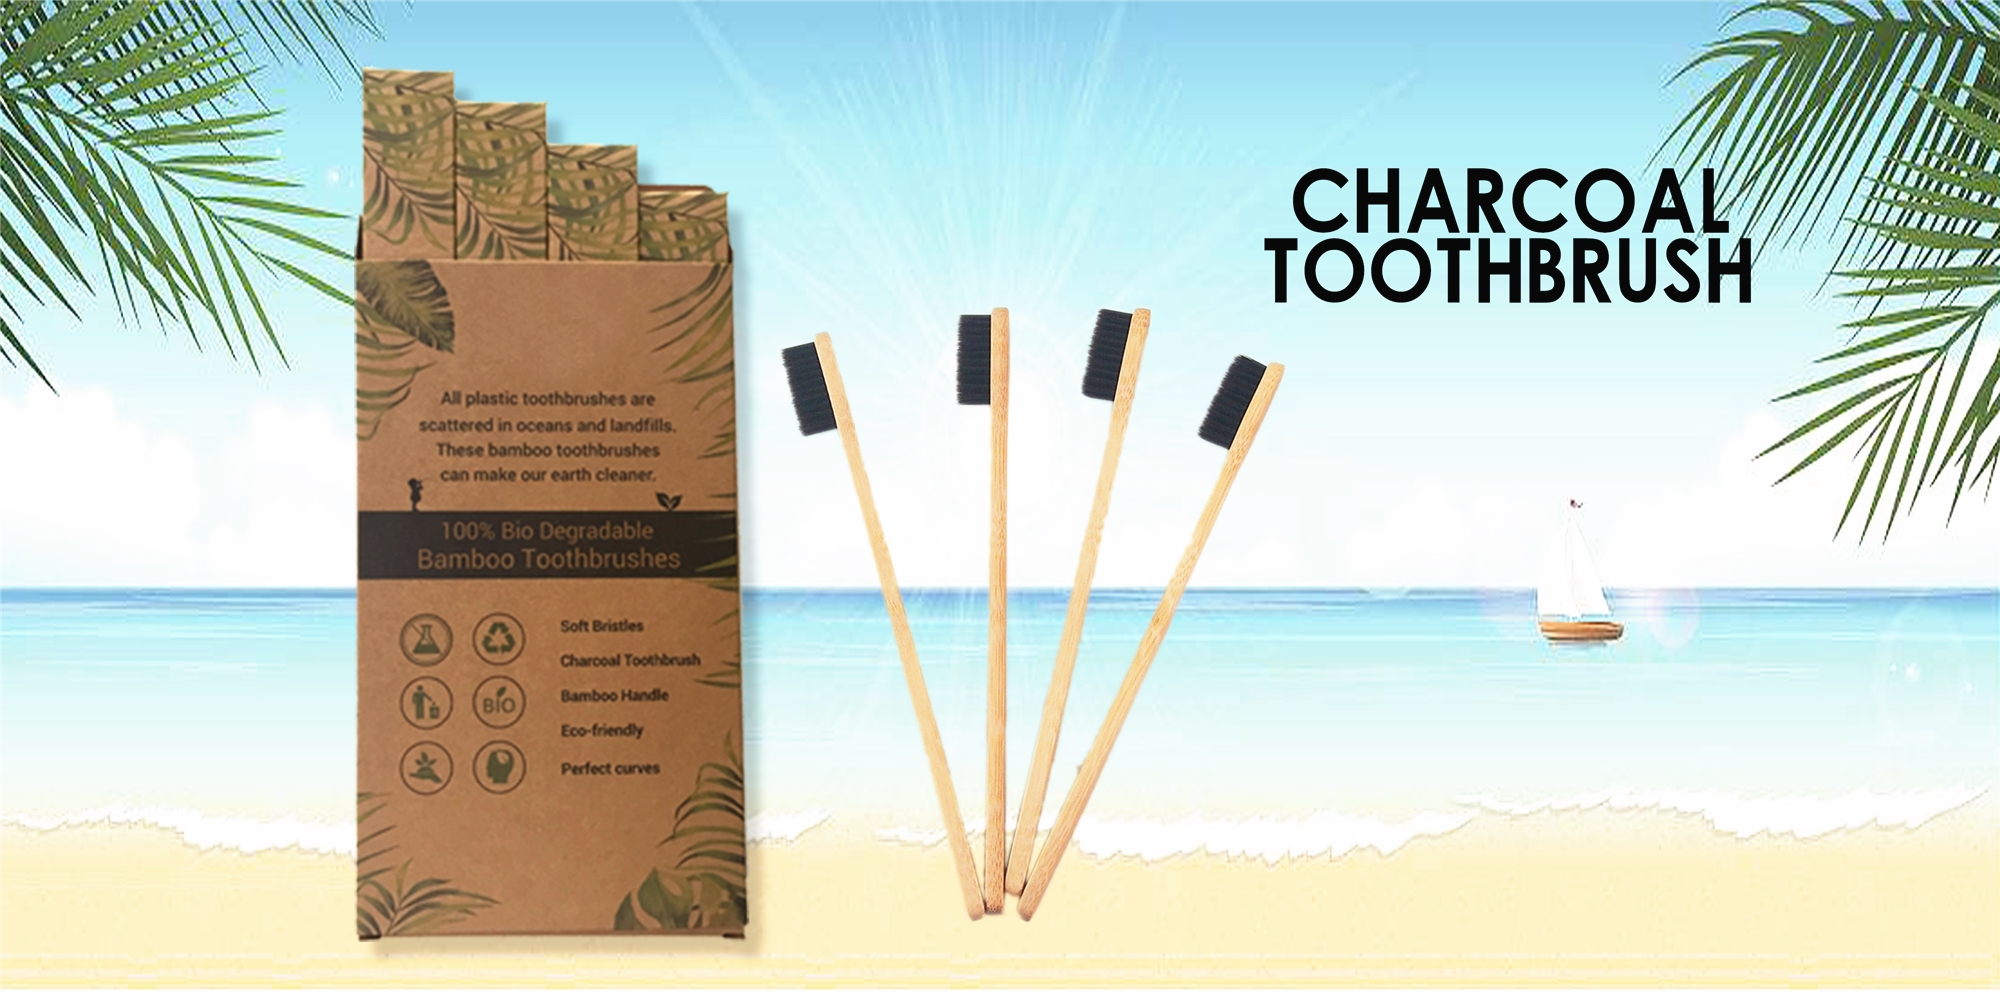 100% Biodegradable eco bamboo toothbrush with charcoal bristle toothbrush,private label black bamboo toothbrush